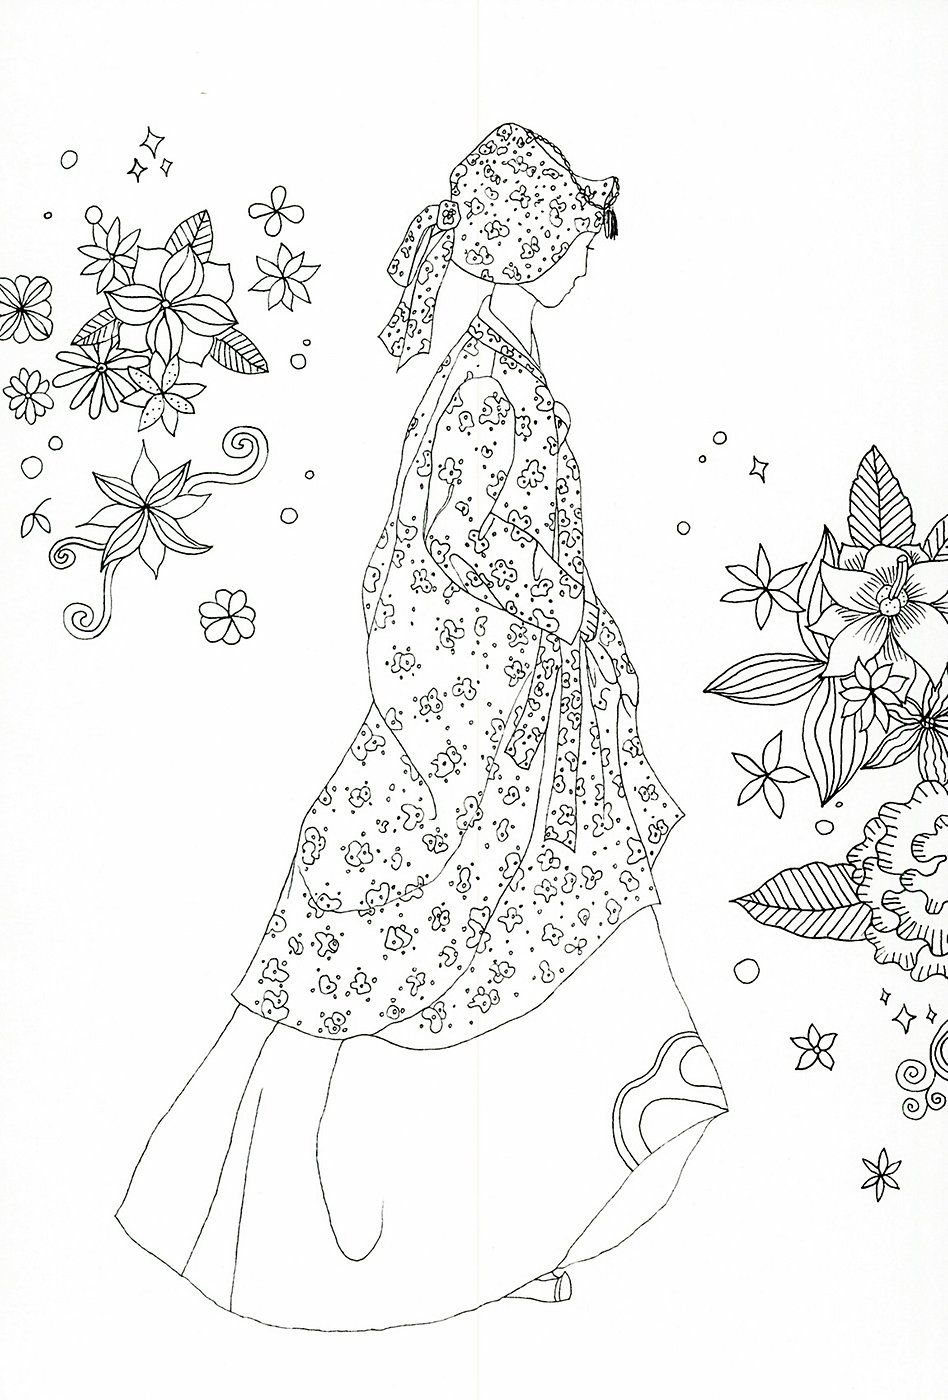 adult coloring page : Korean traditional clothing | @Art 2 ...